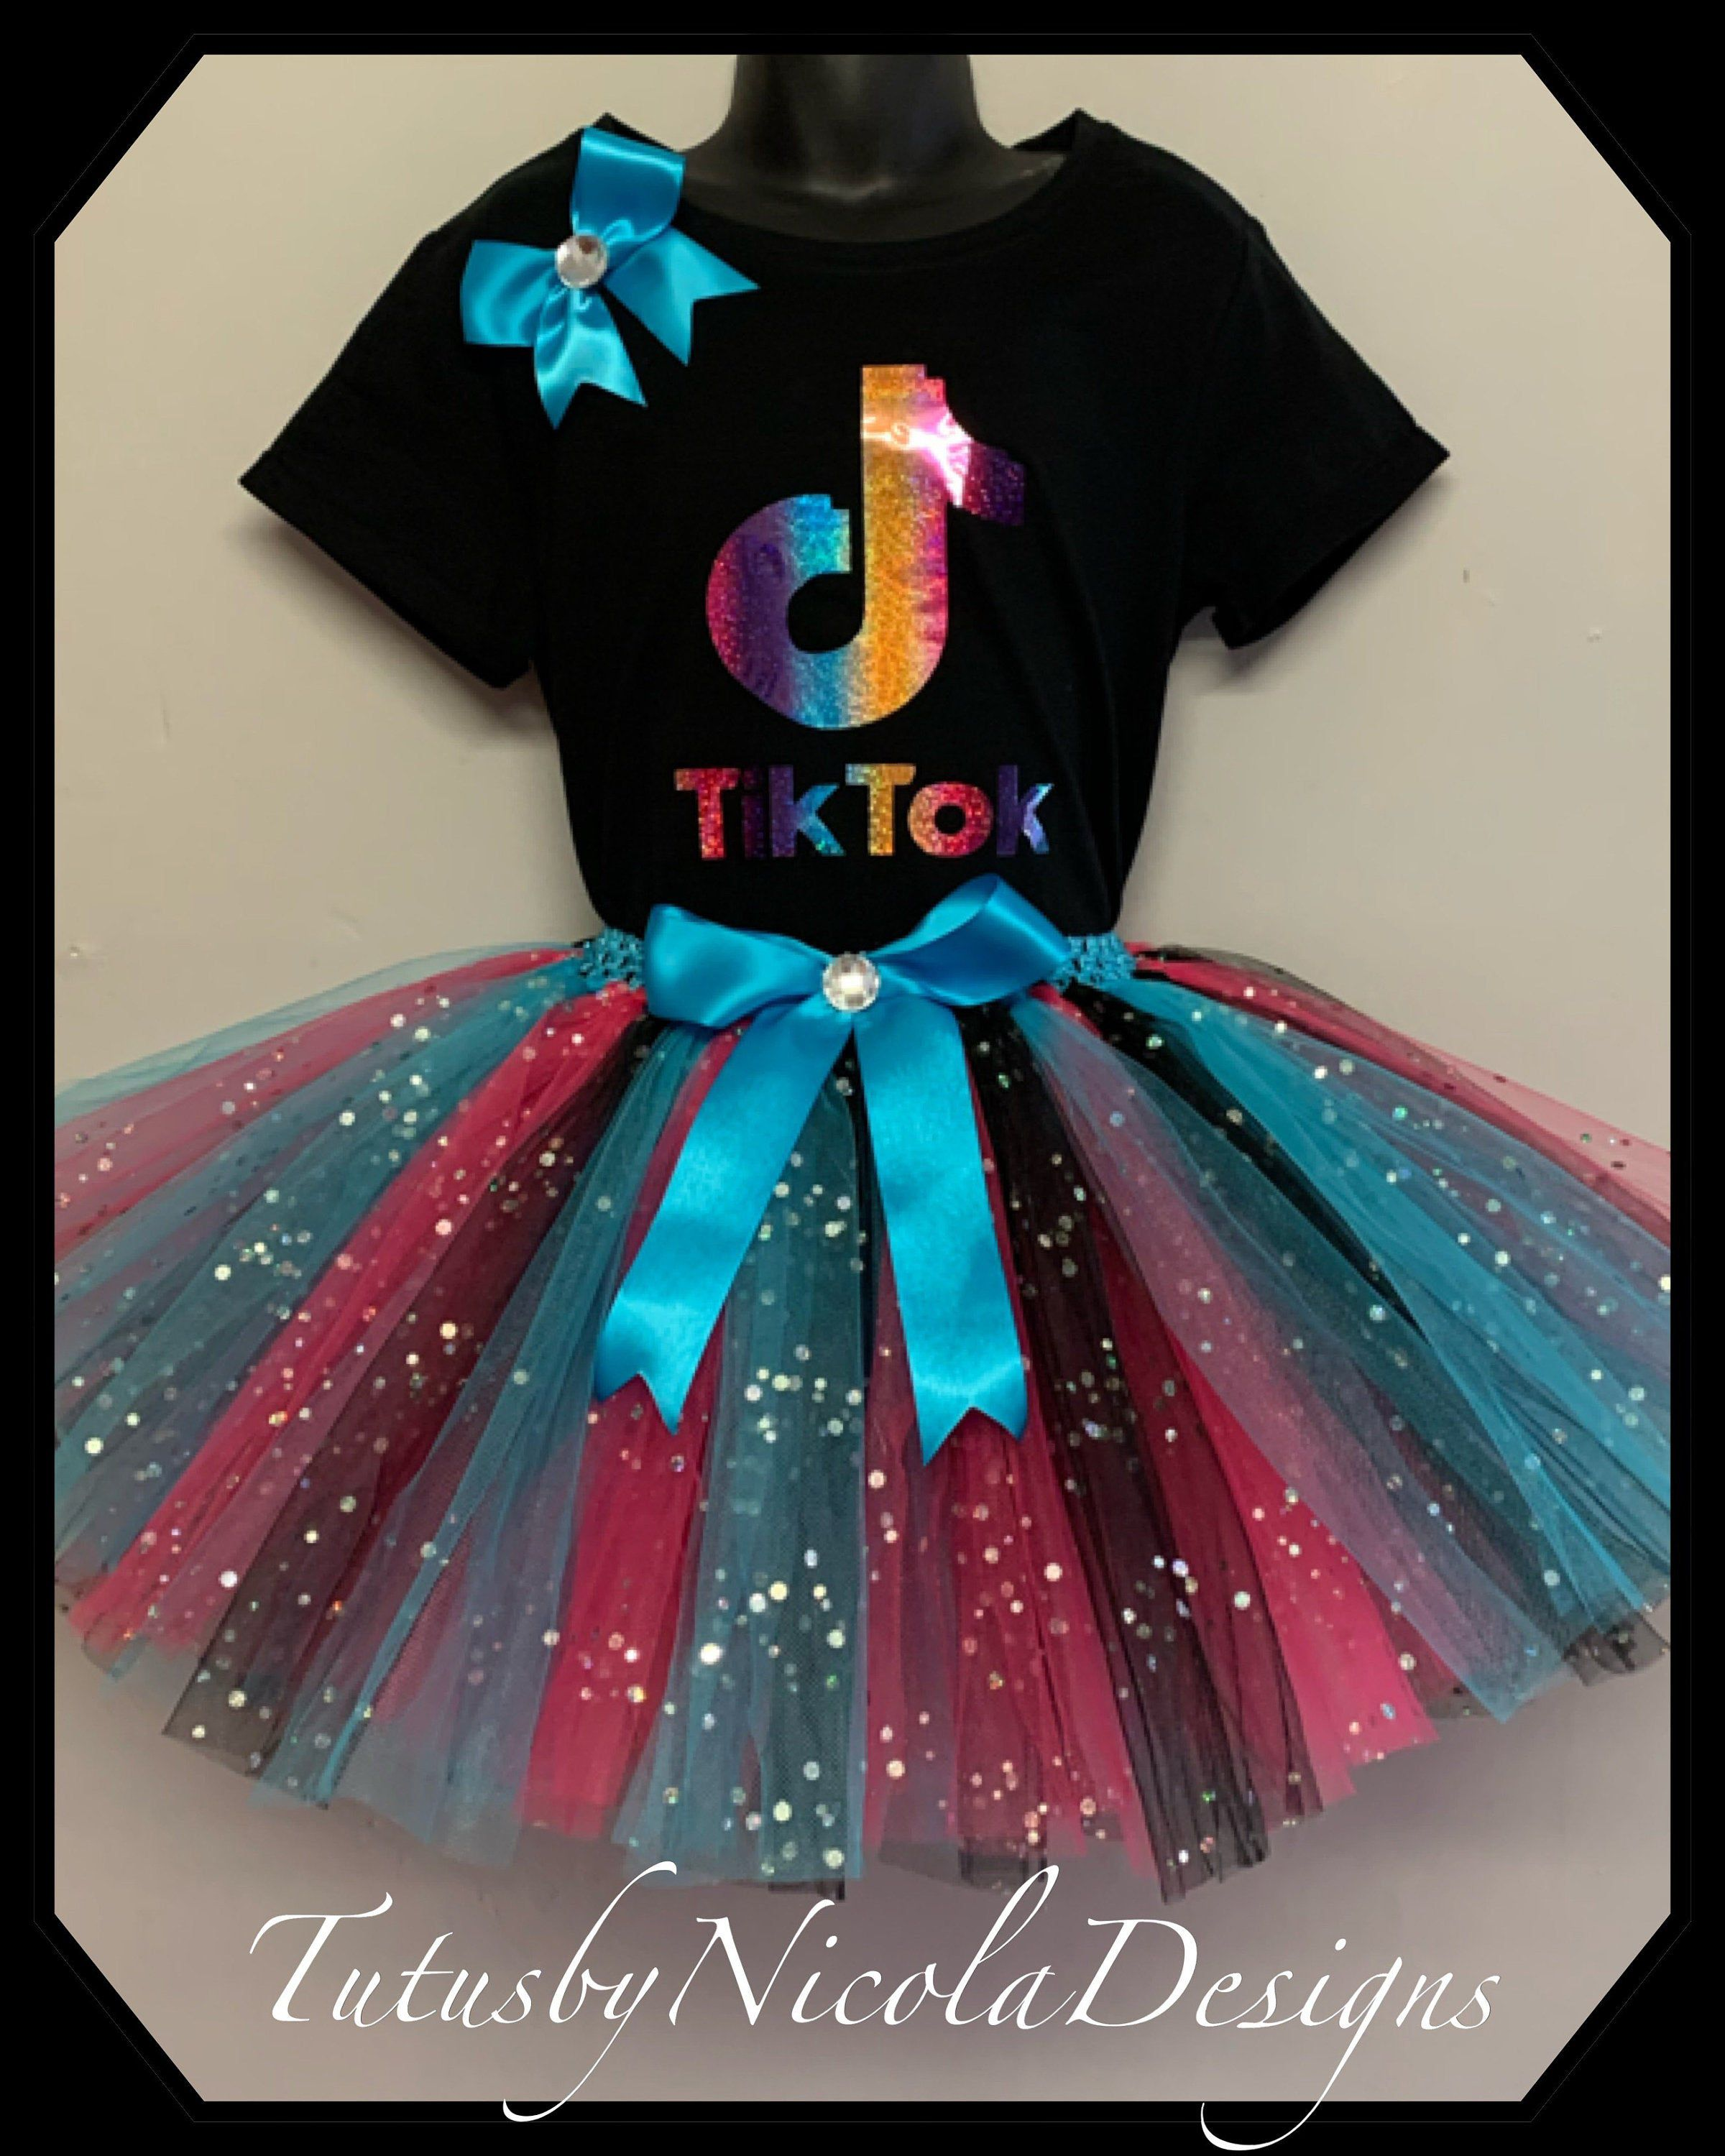 Excited To Share This Item From My Etsy Shop Tiktok Inspired Tutu Birthday Party Dress Outfit W In 2021 Tutu Birthday Party Birthday Party Dress Kid Birthday Outfits